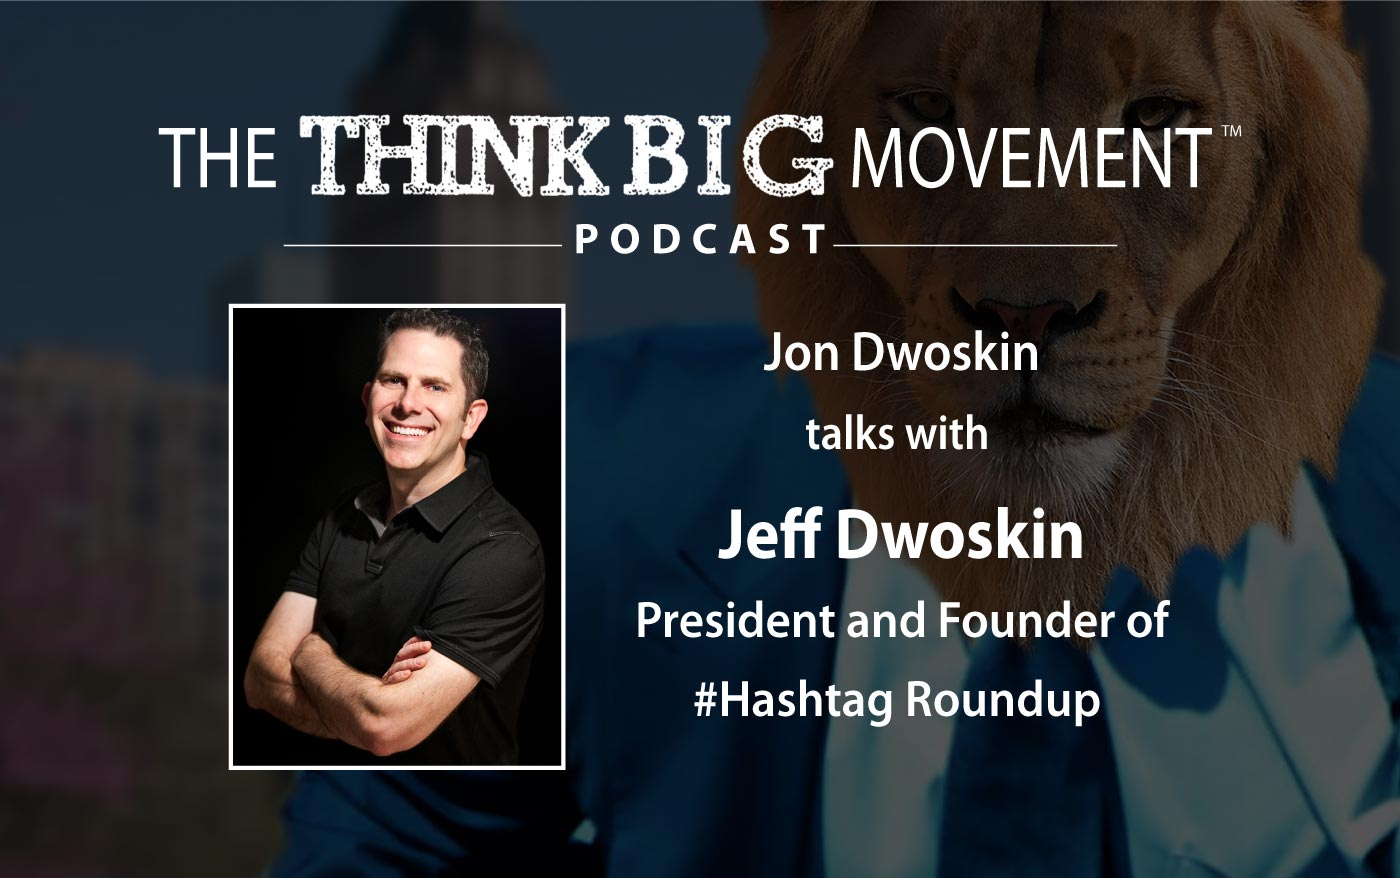 Think Big Movement Podcast - Jon Dwoskin Interviews Jeff DwoskinPresident and Founder of #Hashtag Roundup